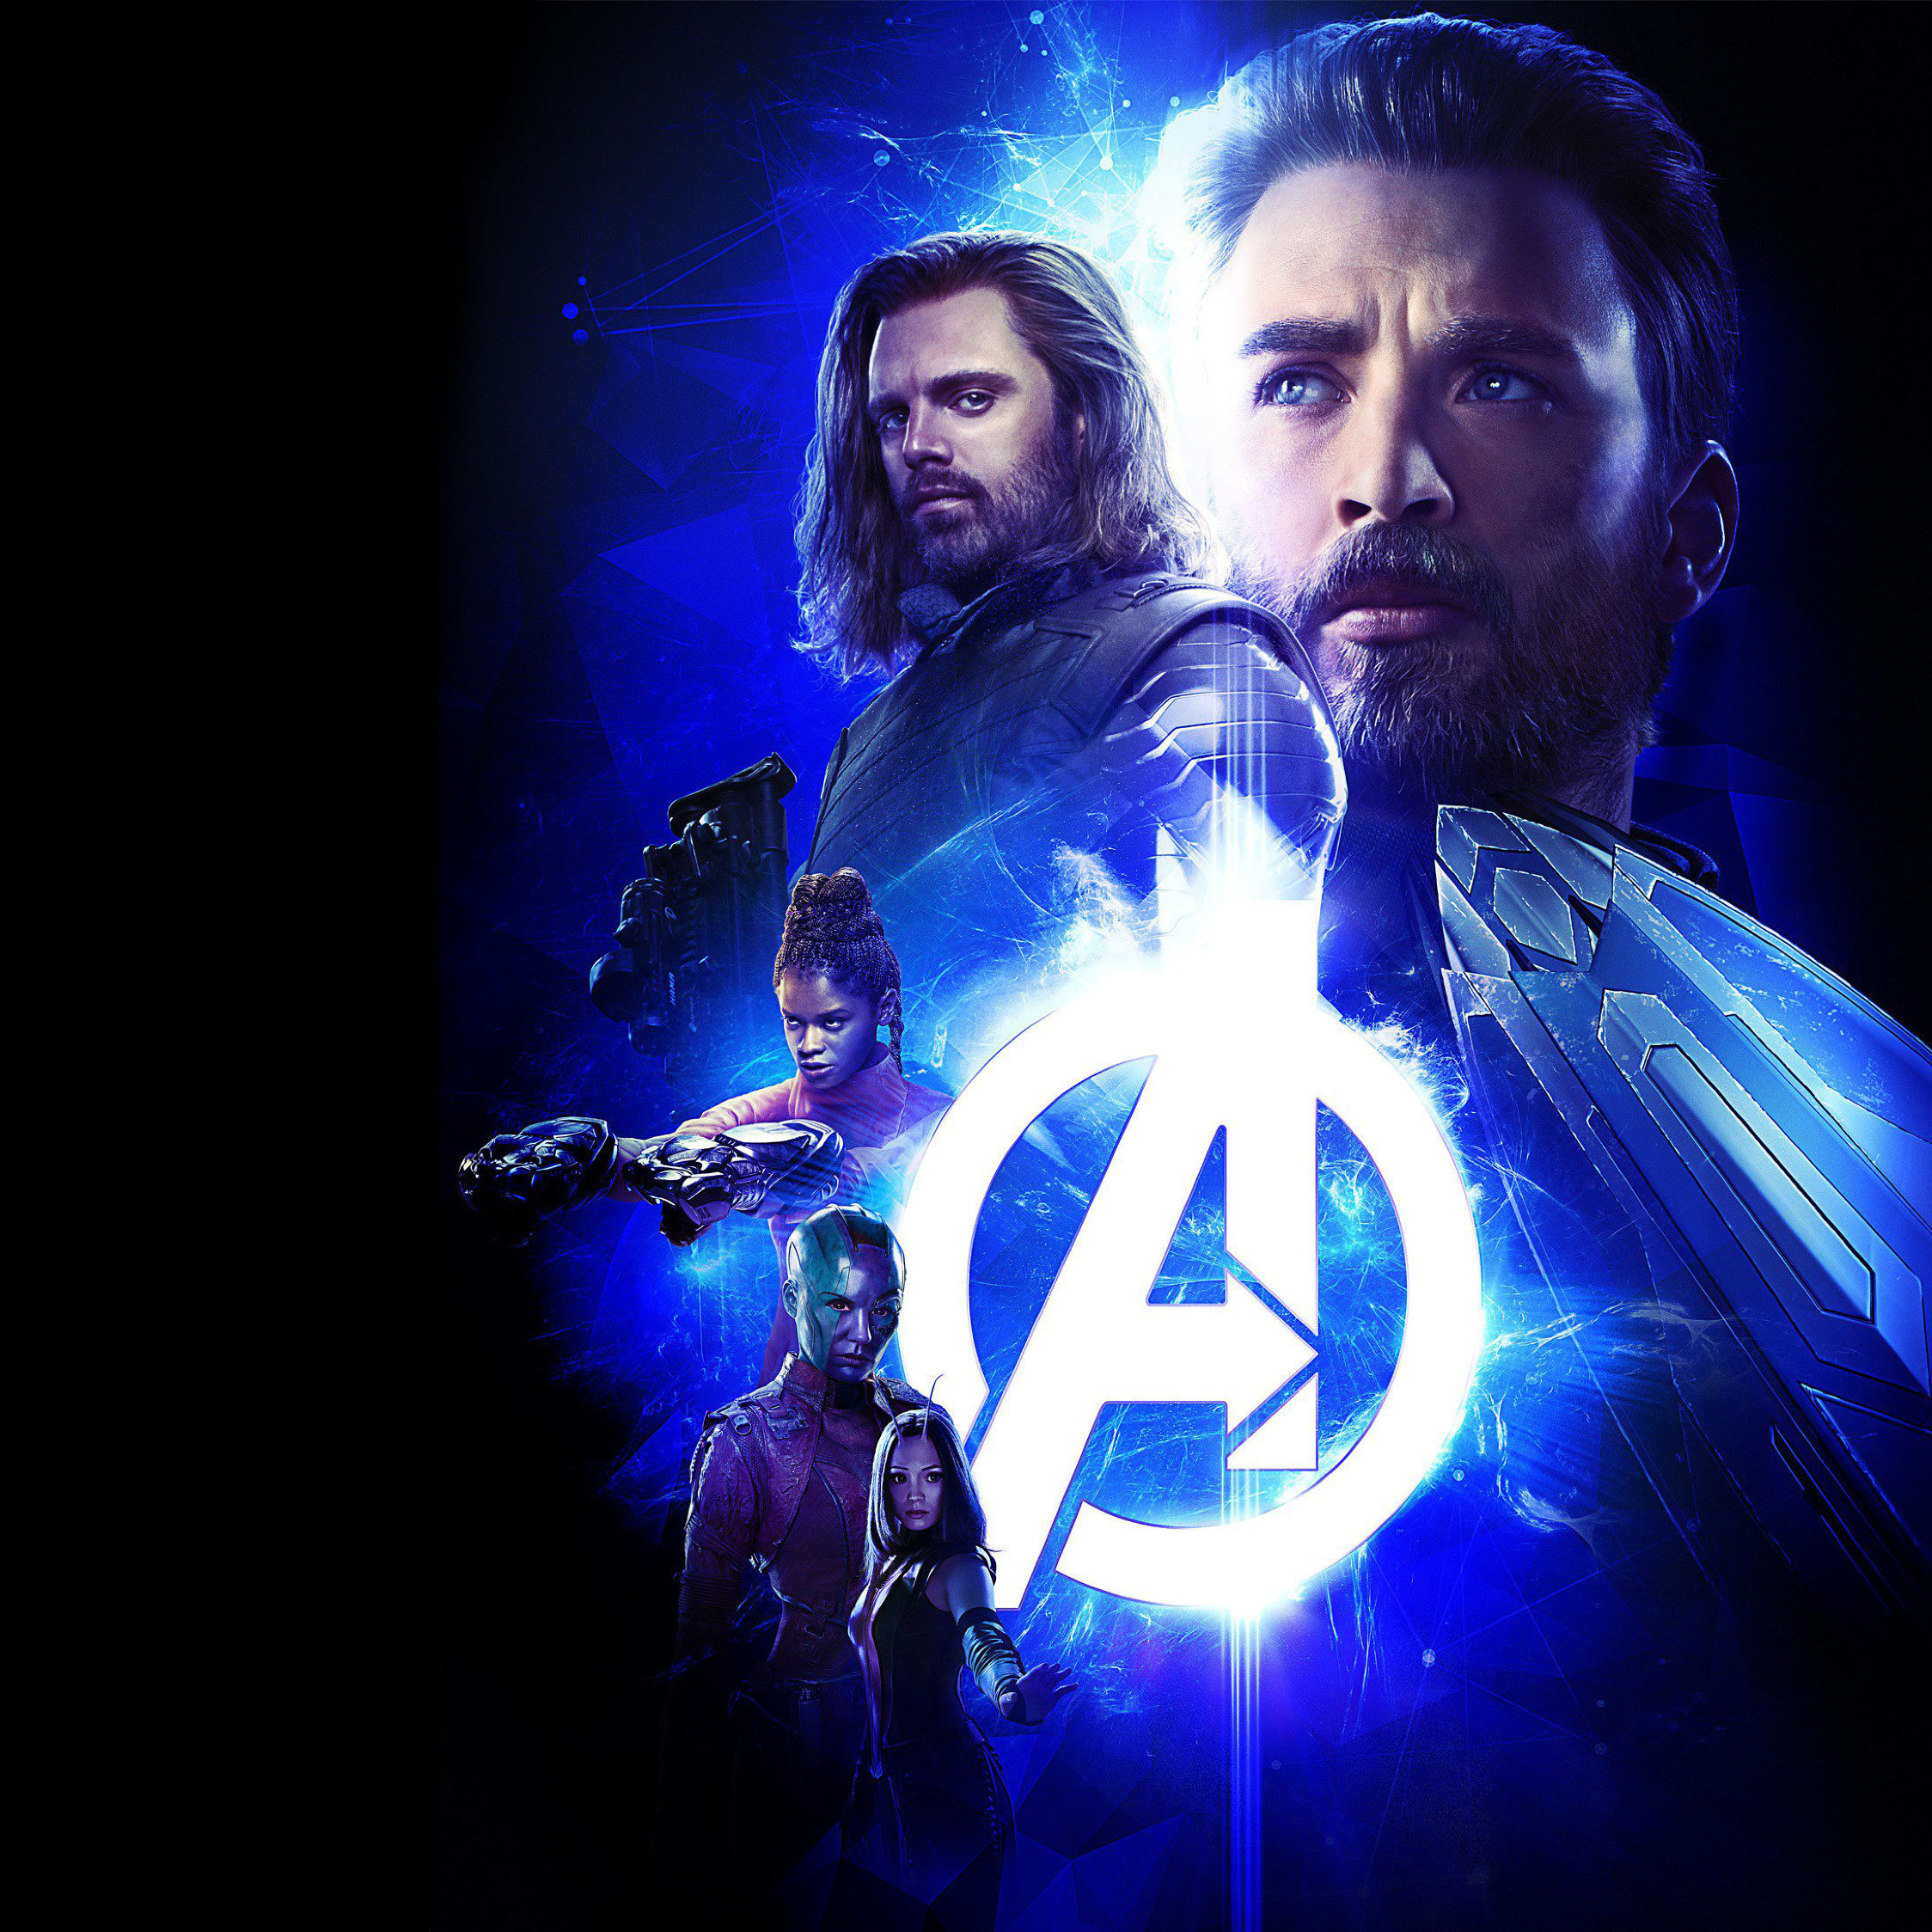 X2 Poster Space Stone Avengers I...